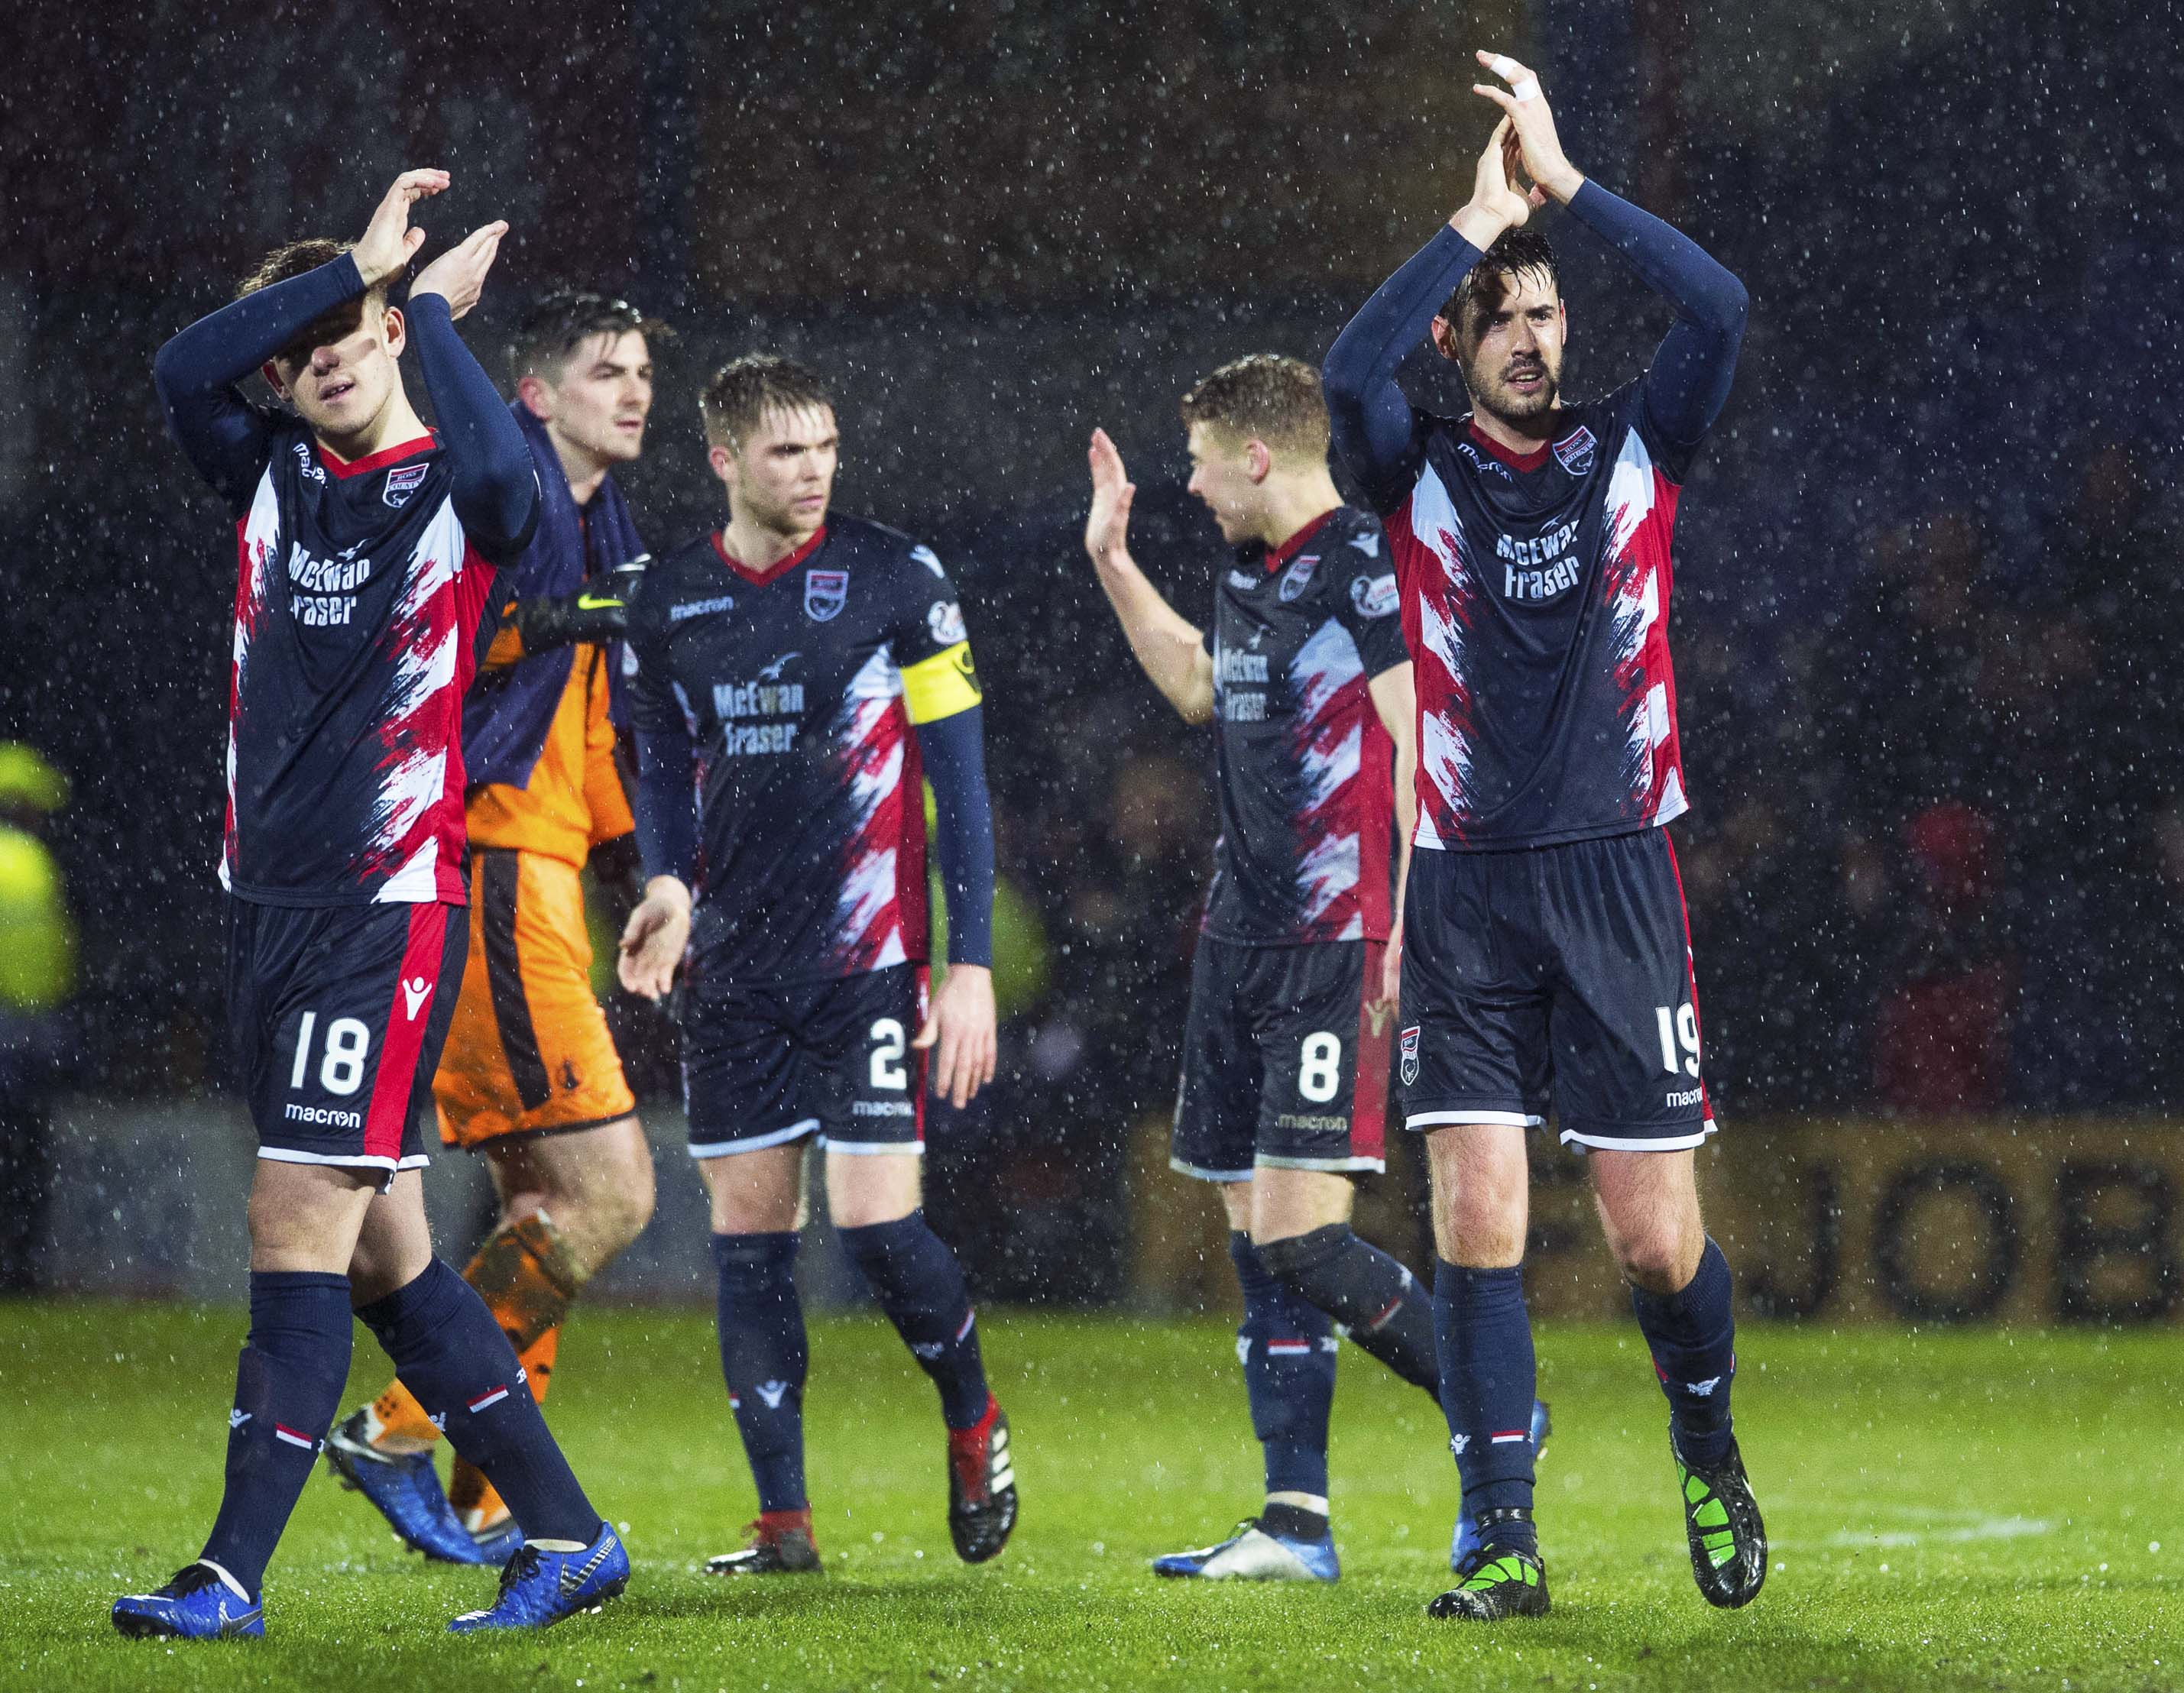 Callum Semple (far left) came on in last Tuesday's win over Falkirk.